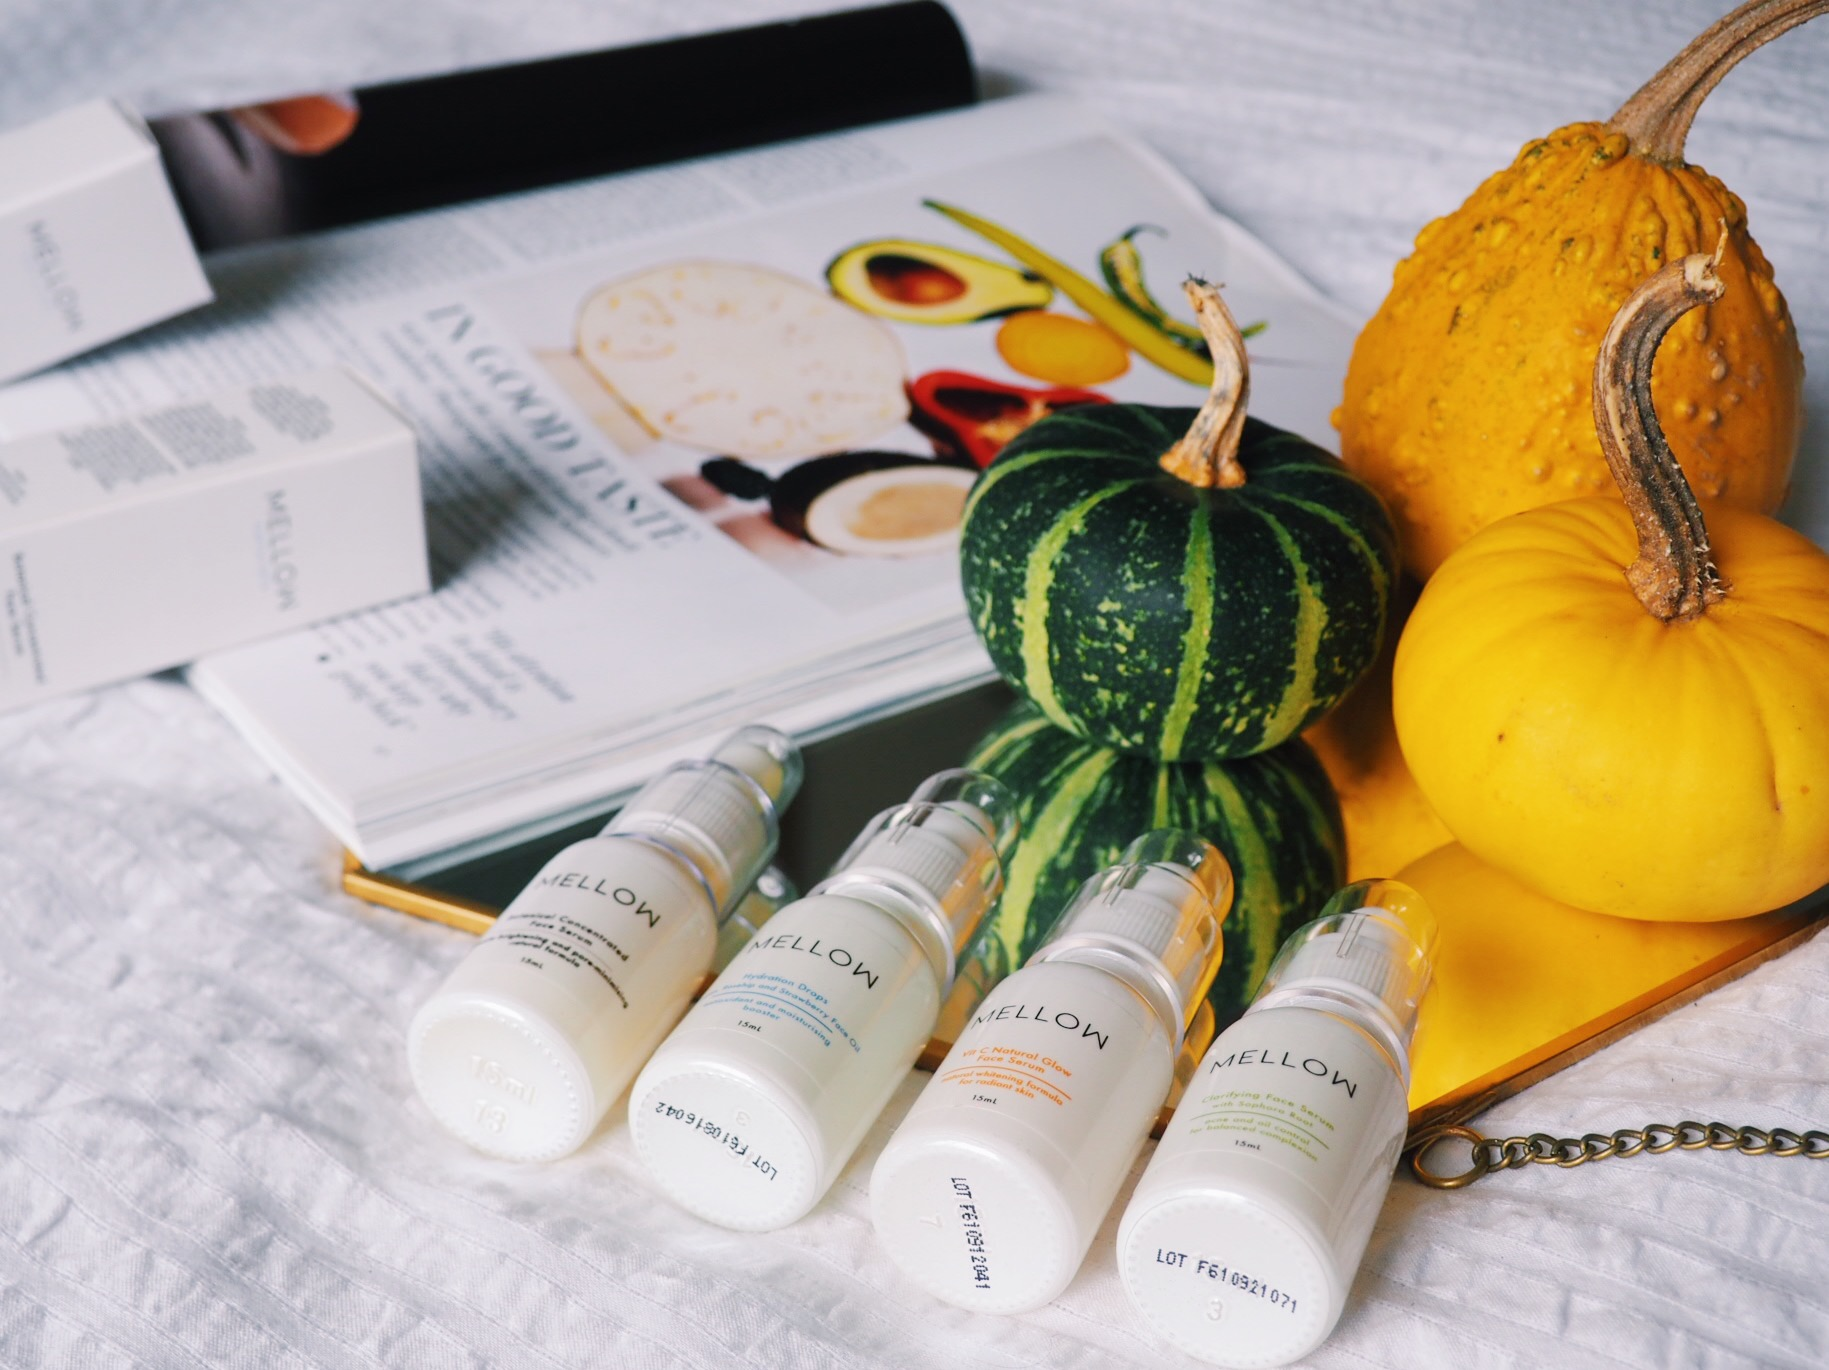 A collection of serums from Mellow Naturals Skincare, photographed alongside Vogue magazine and some fancy squash in an Autumnal lifestyle image